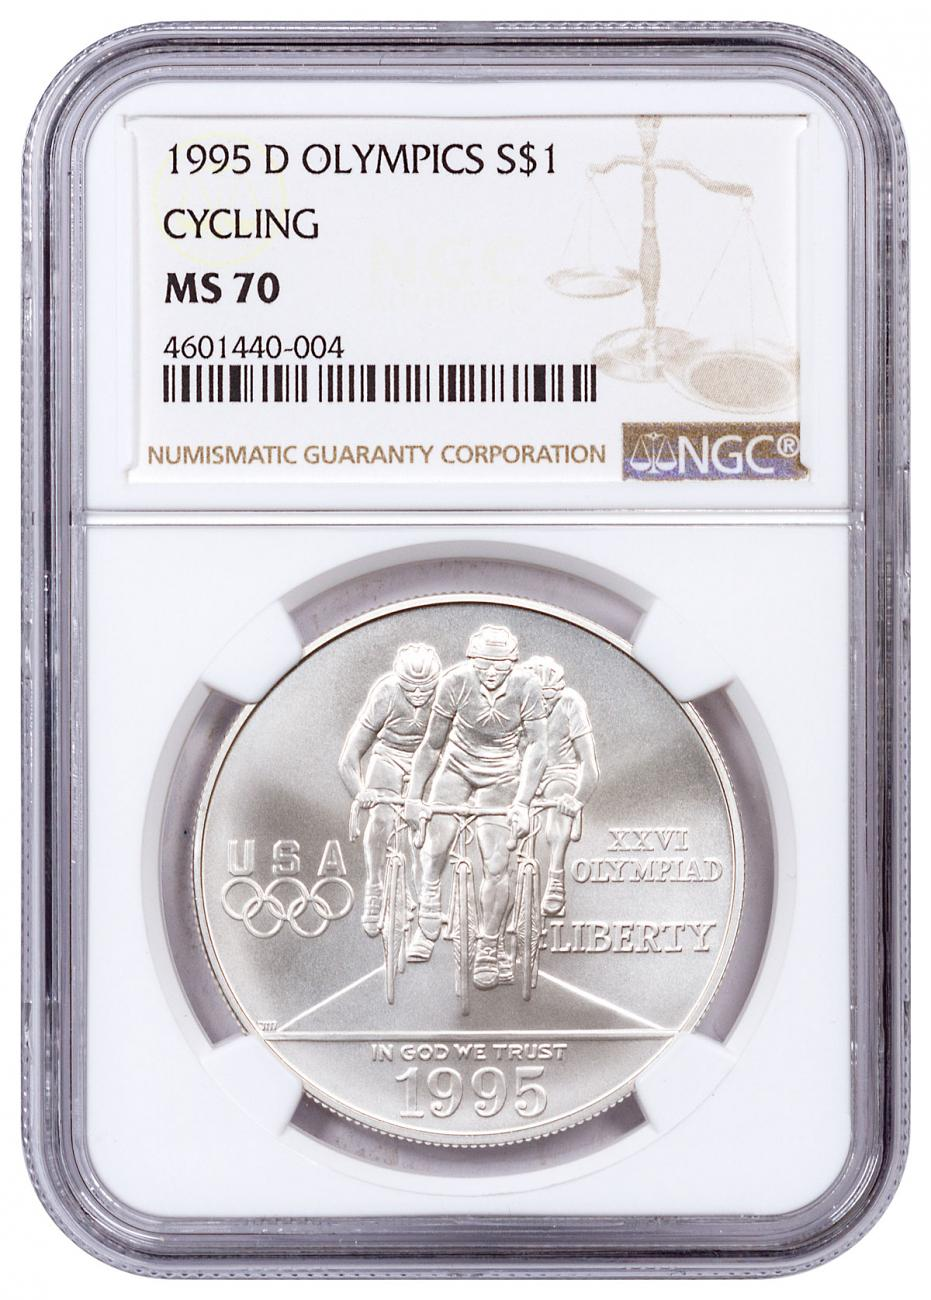 1995-D Olympics - Cycling Commemorative Silver Dollar NGC MS70